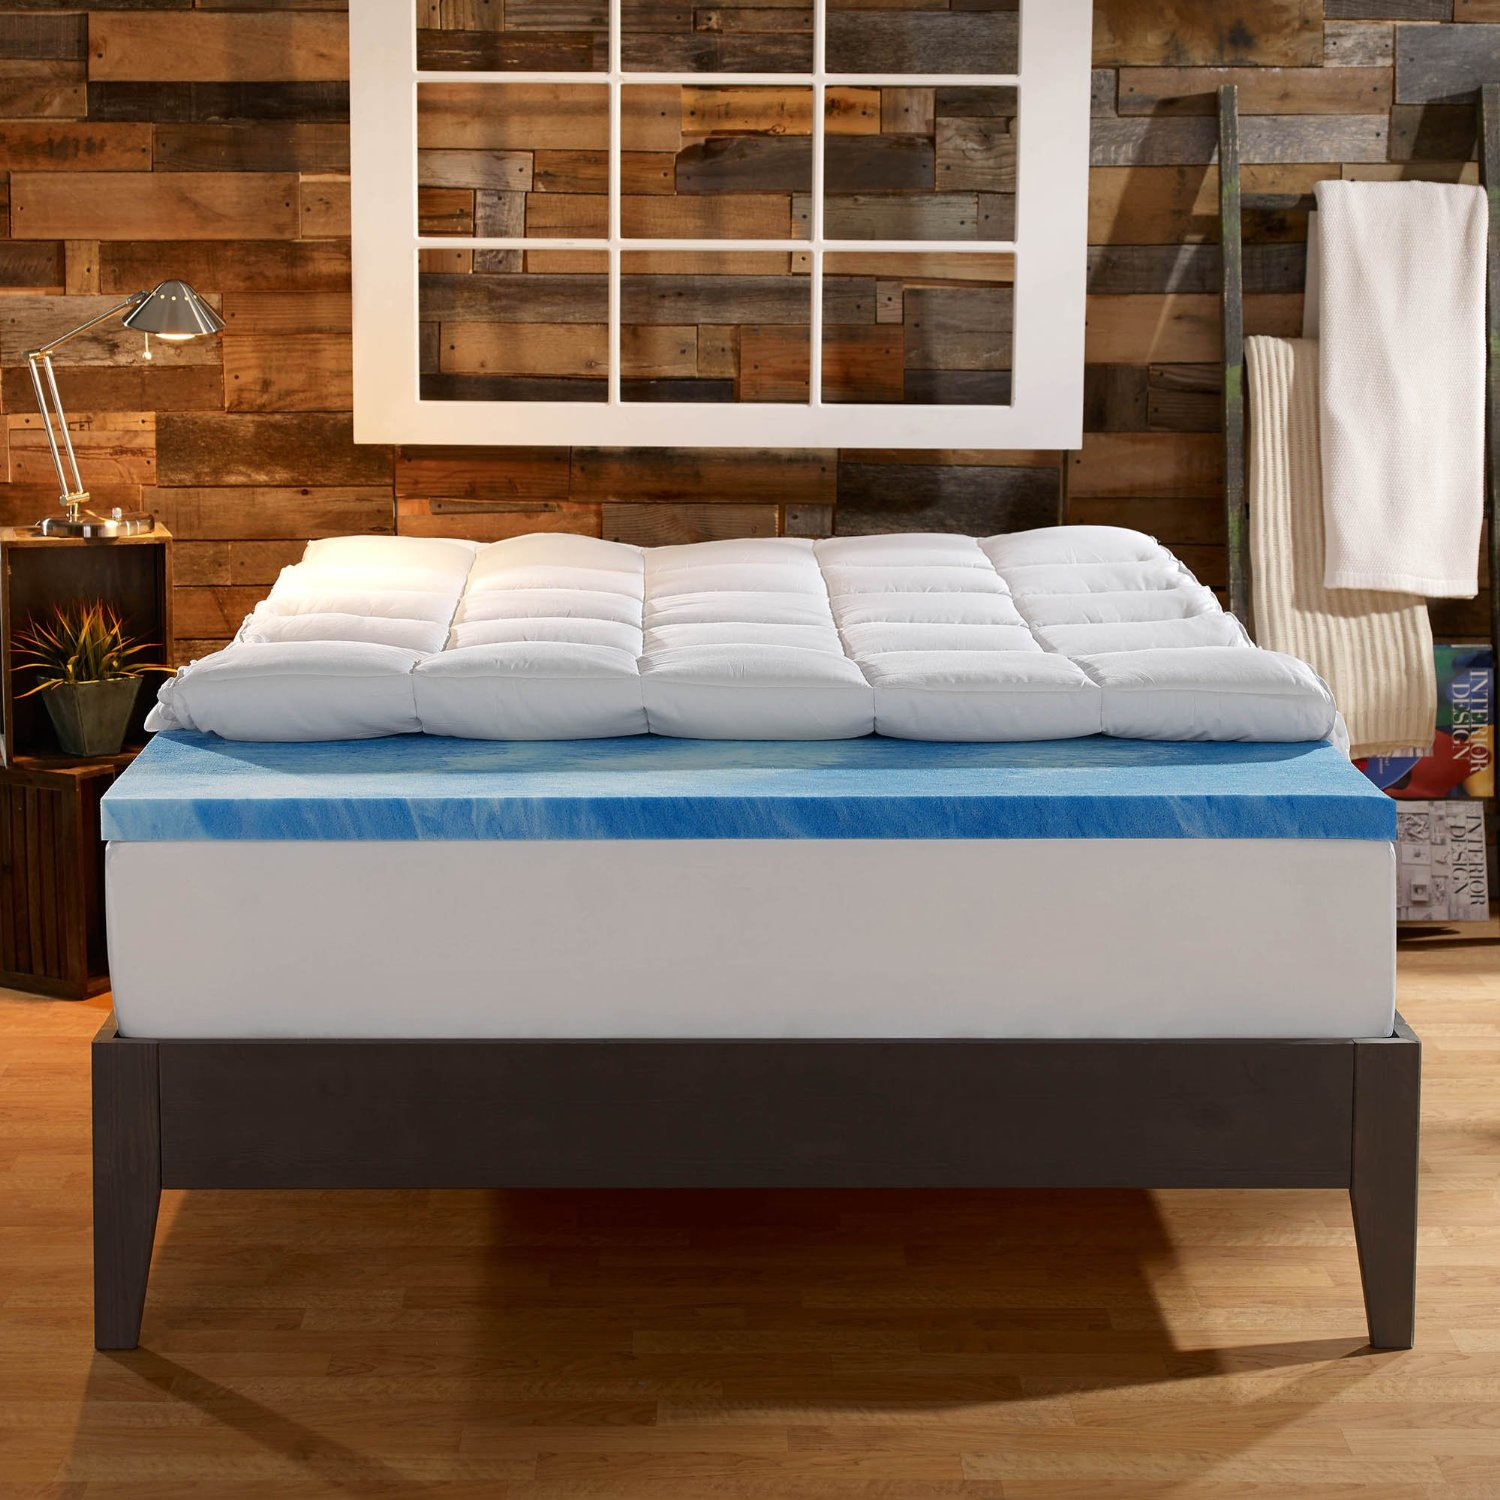 provides features with of top excellent acceptable other guide and mattress for best its into look most this compare sleepers side let buying tempurpedic shiloh competitors review s level sleeper firmness comfort to